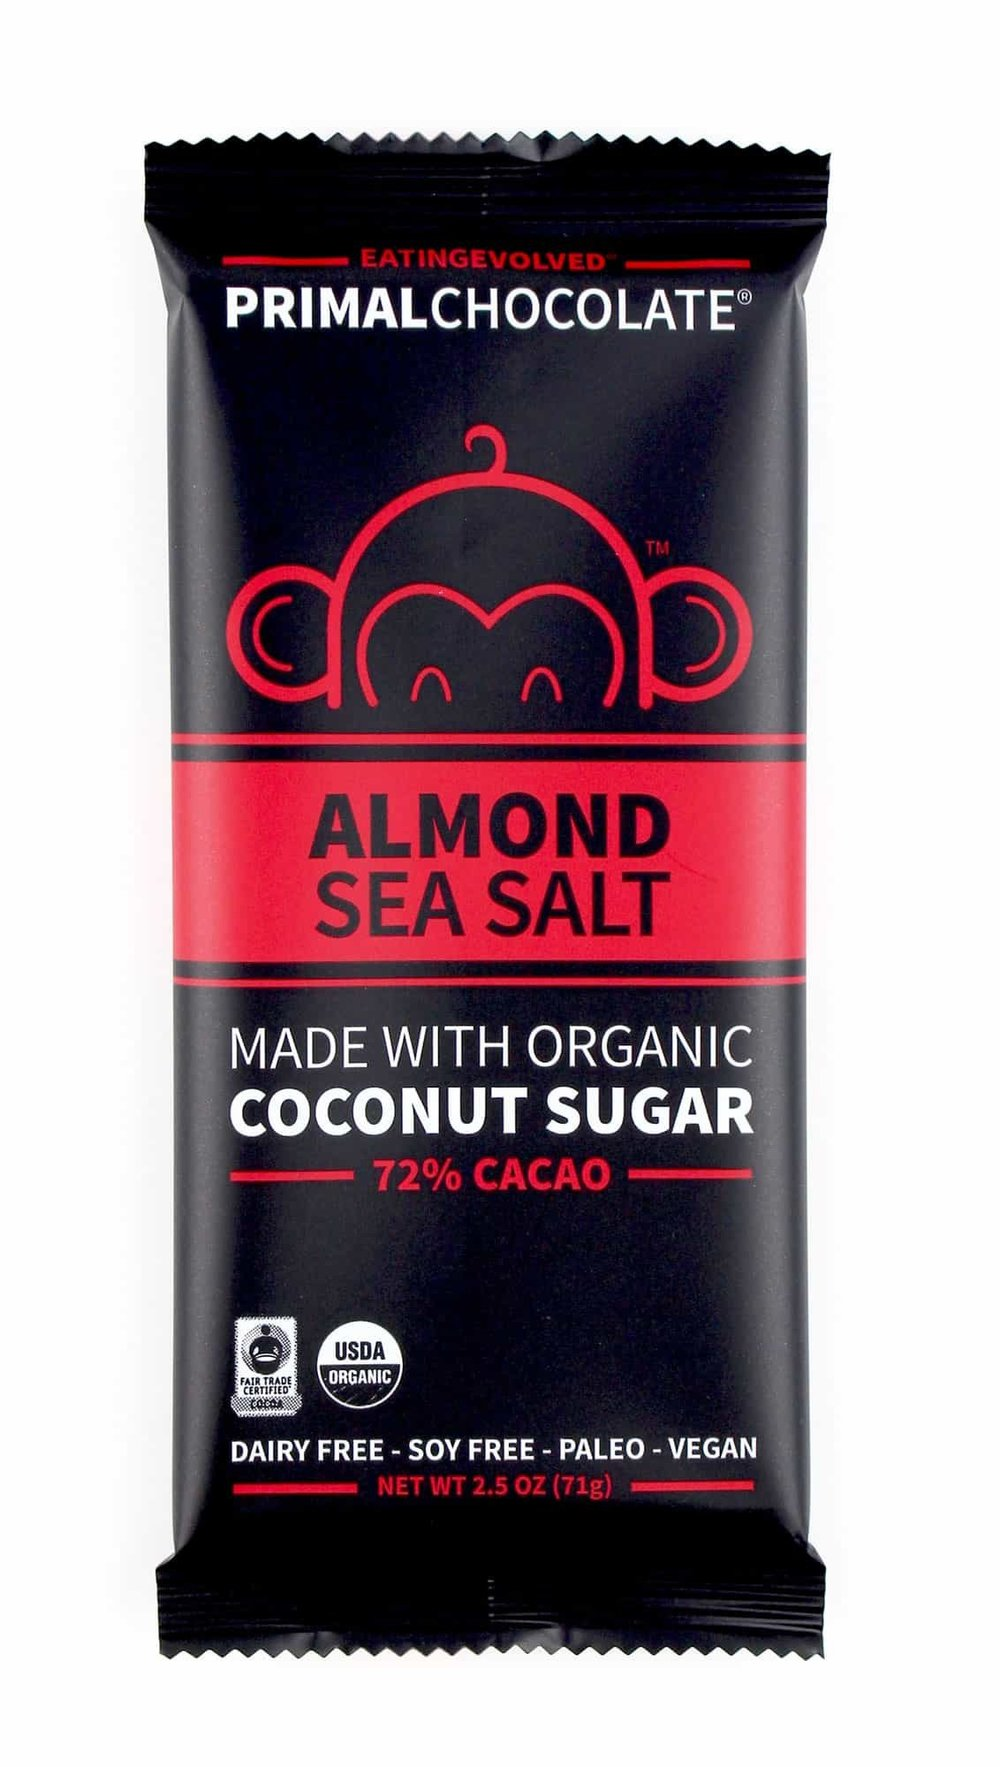 Almond-Sea-Salt-Primal-Chocolate-Front_1800x.jpg